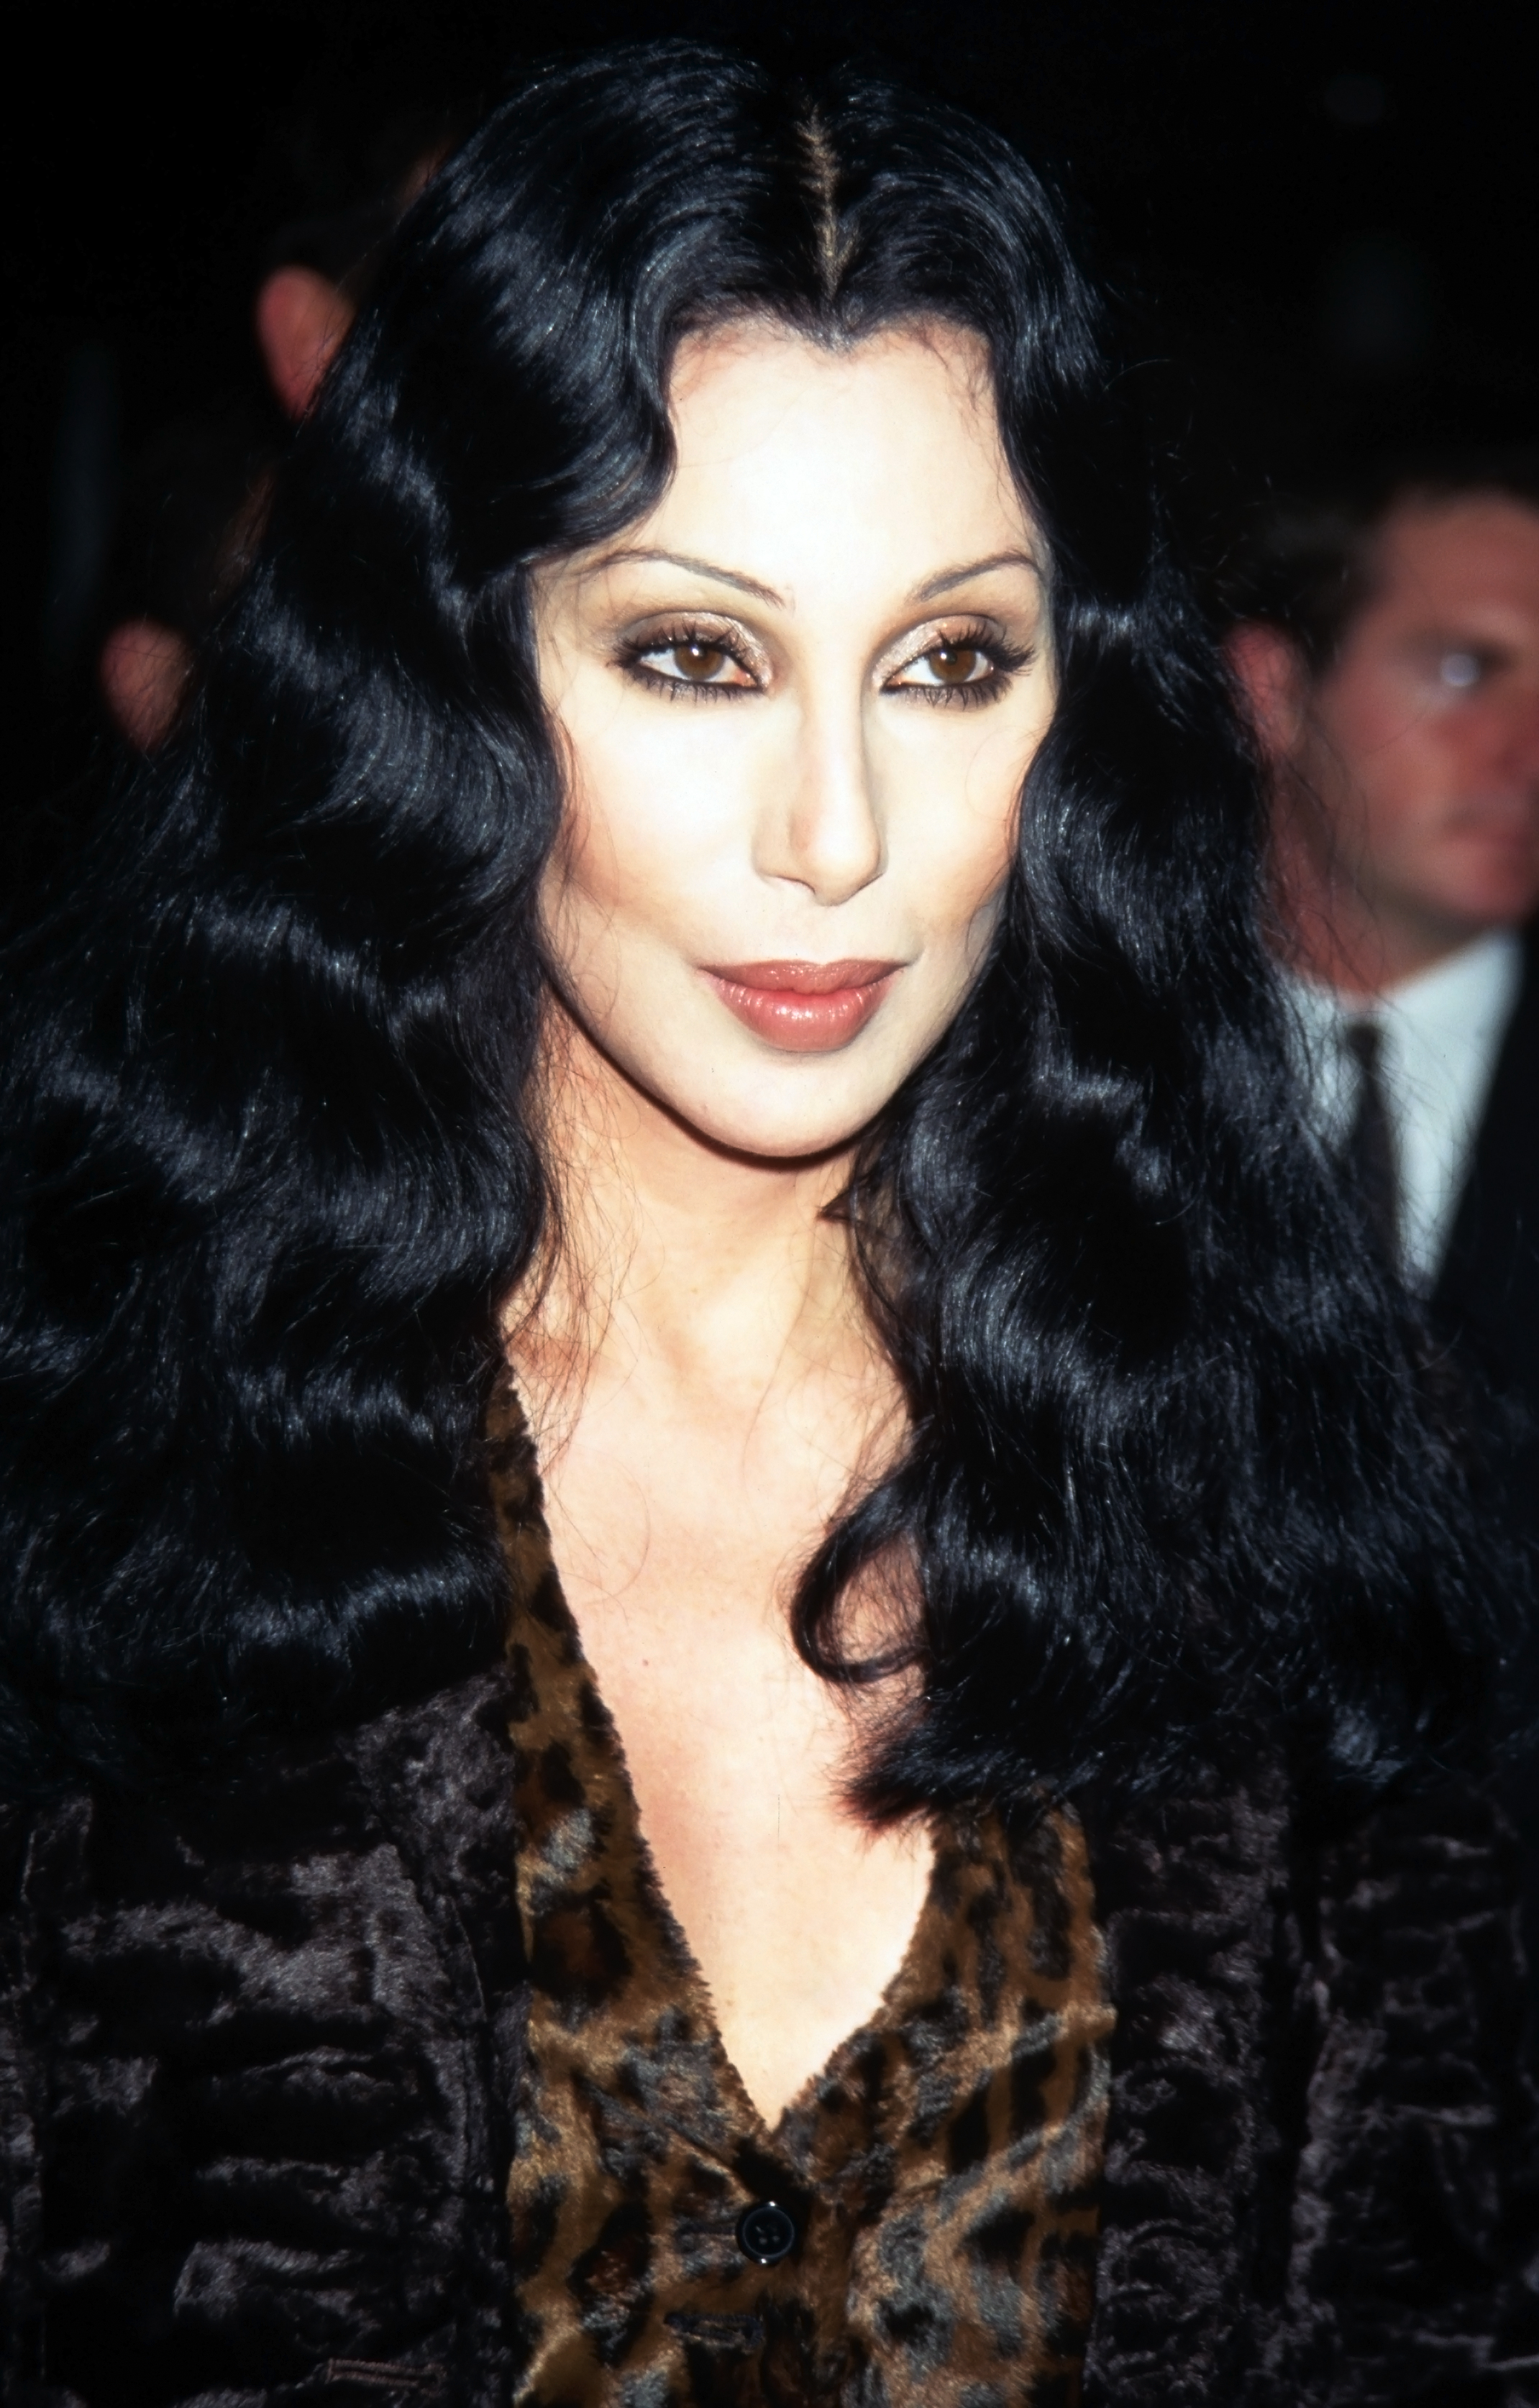 Cher Through The Years - Cher made her directing debut with the HBO made-for-TV movie If These Walls Could Talk . She also starred in the film.